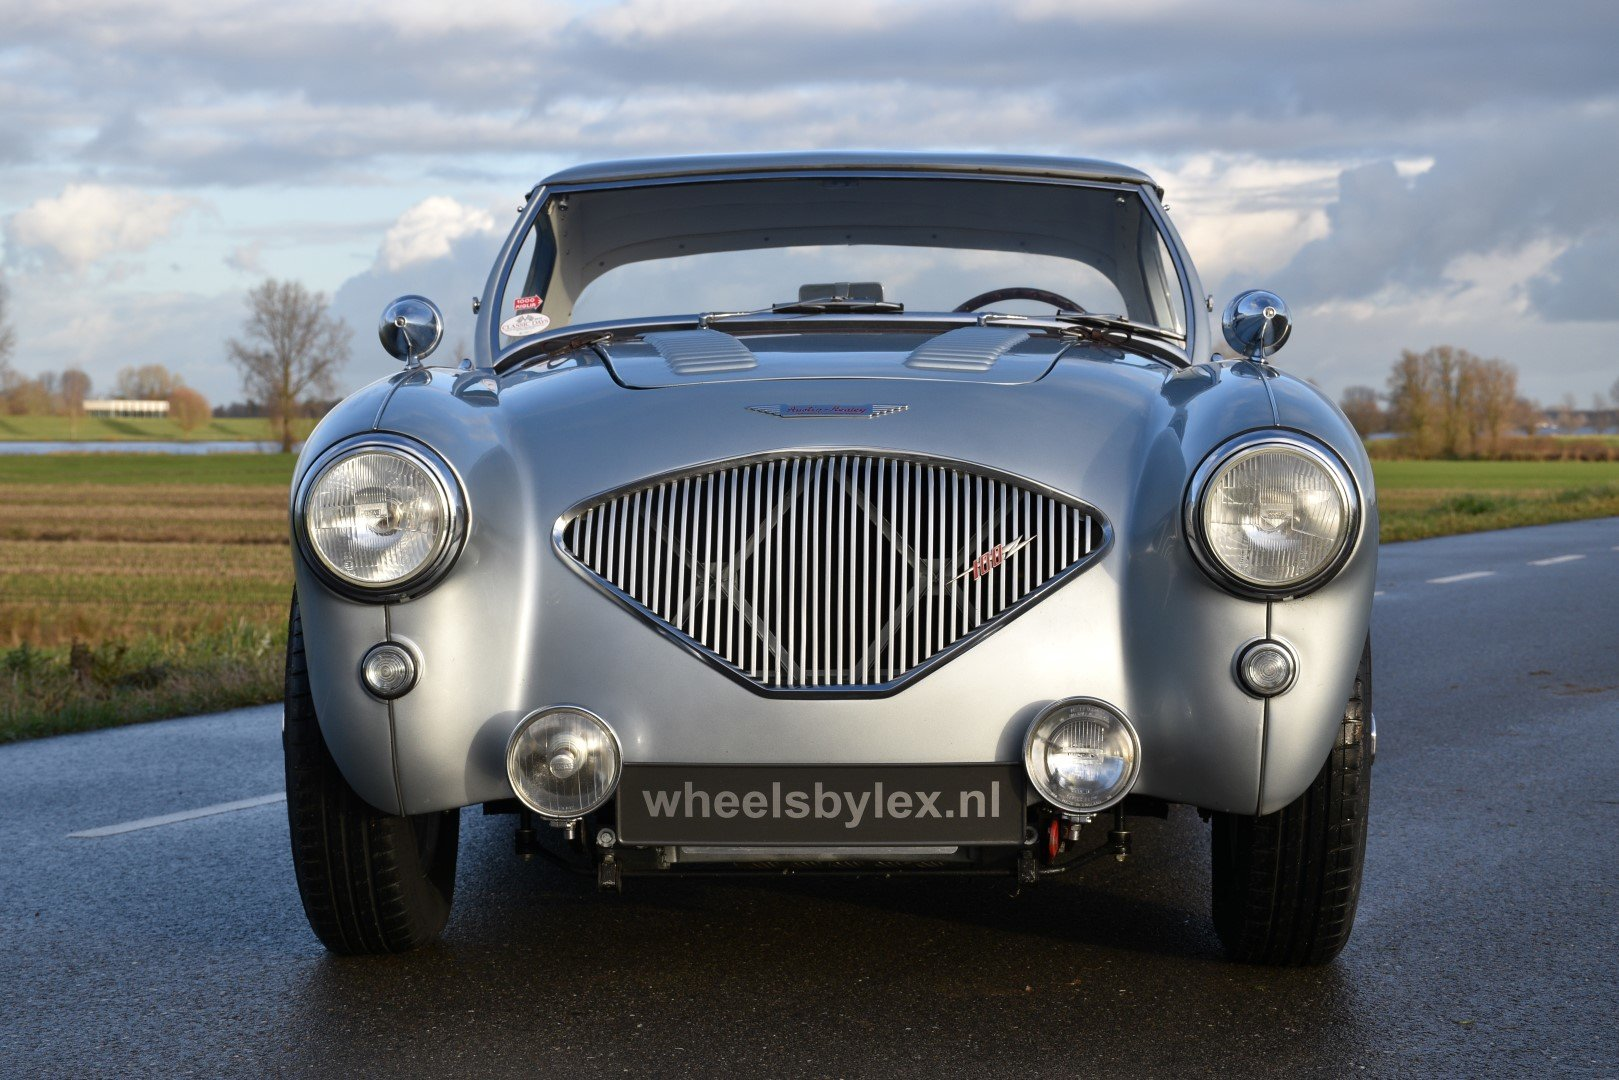 1955 Austin Healey 100-4 BN1  For Sale (picture 2 of 6)